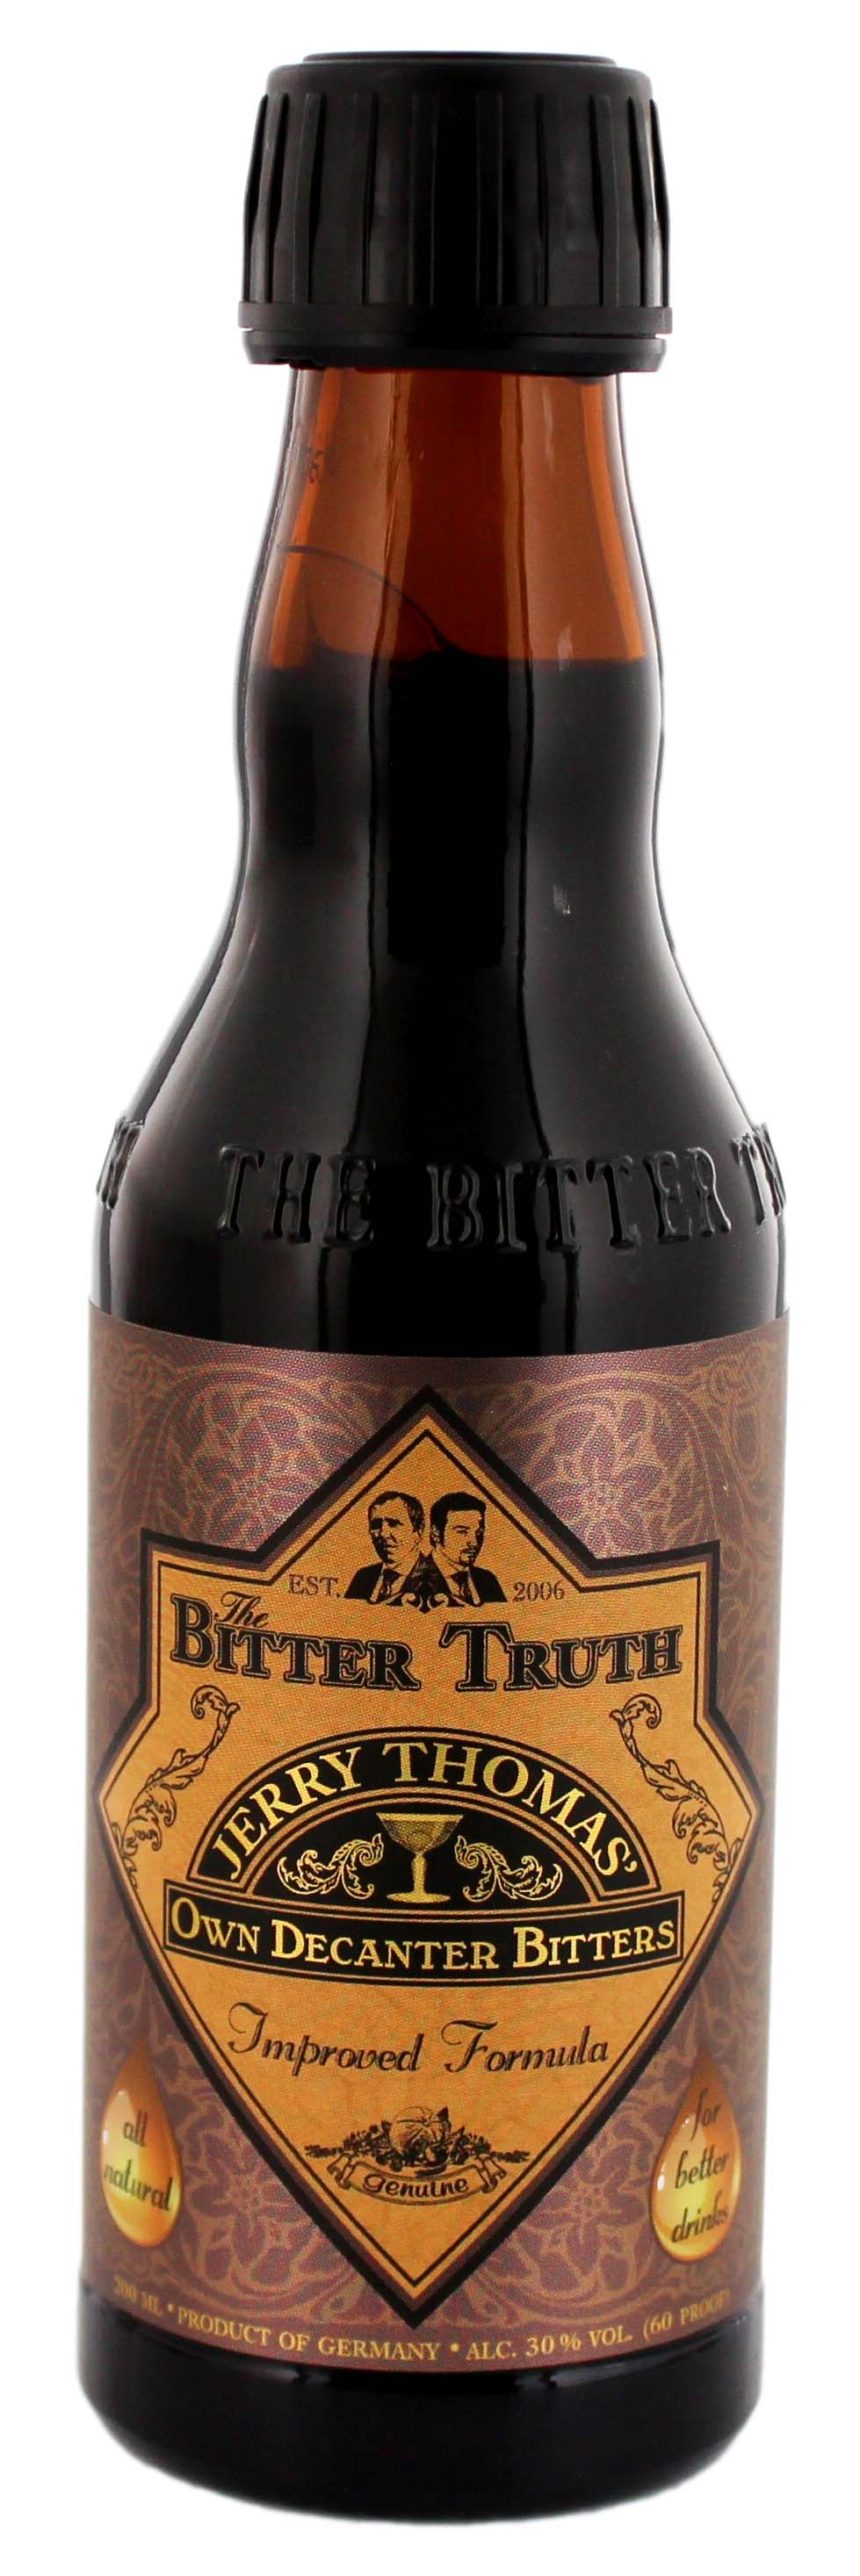 The Bitter Truth Jerry Thomas Own Decanter Bitters 0,2L